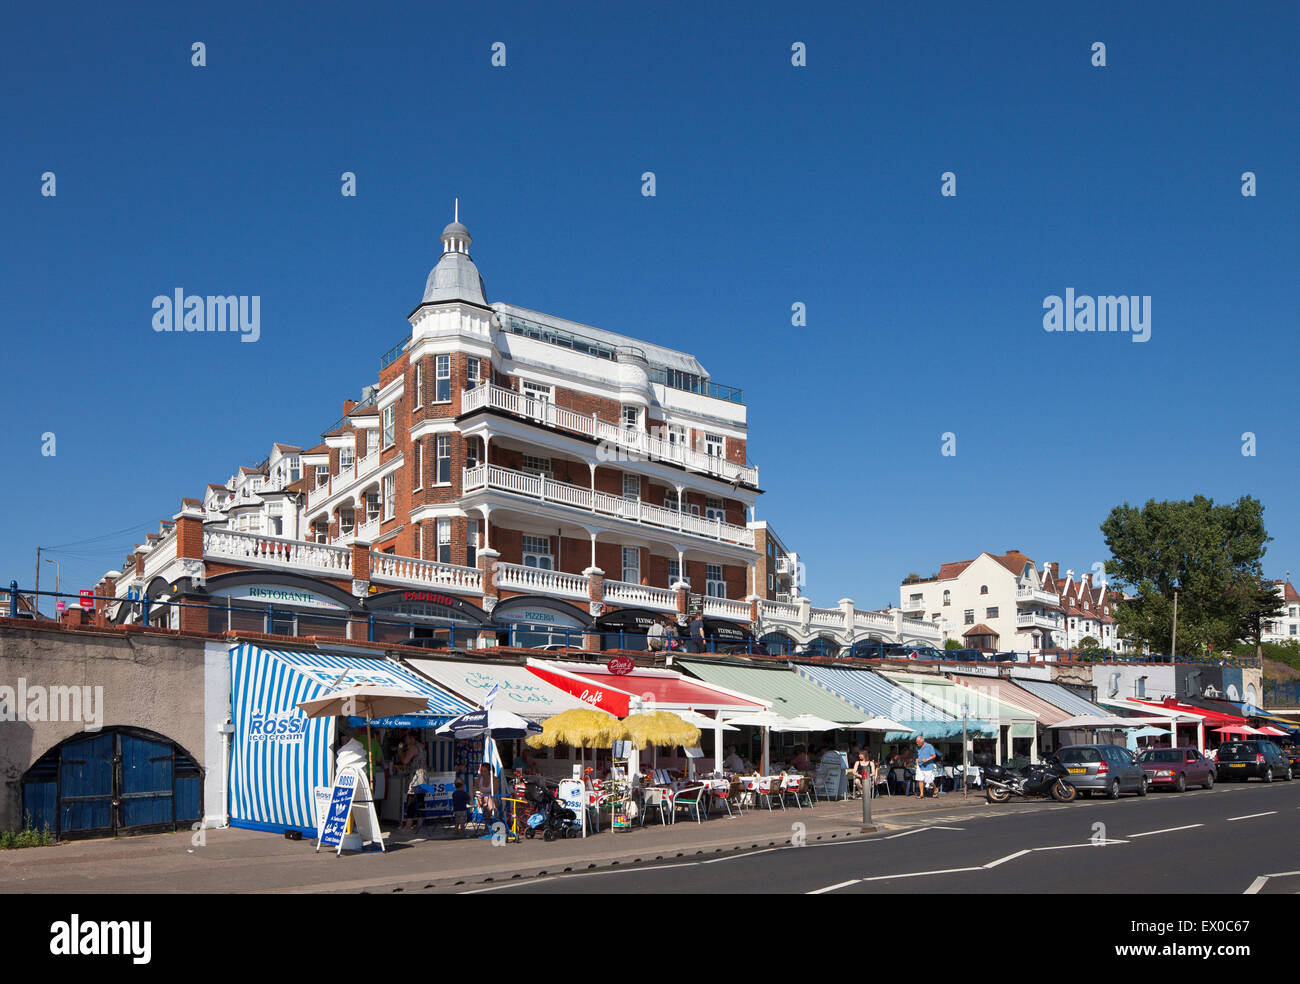 Western Esplanade Restaurants, Palmeira Parade, Westcliffe, Southend on Sea. Stock Photo